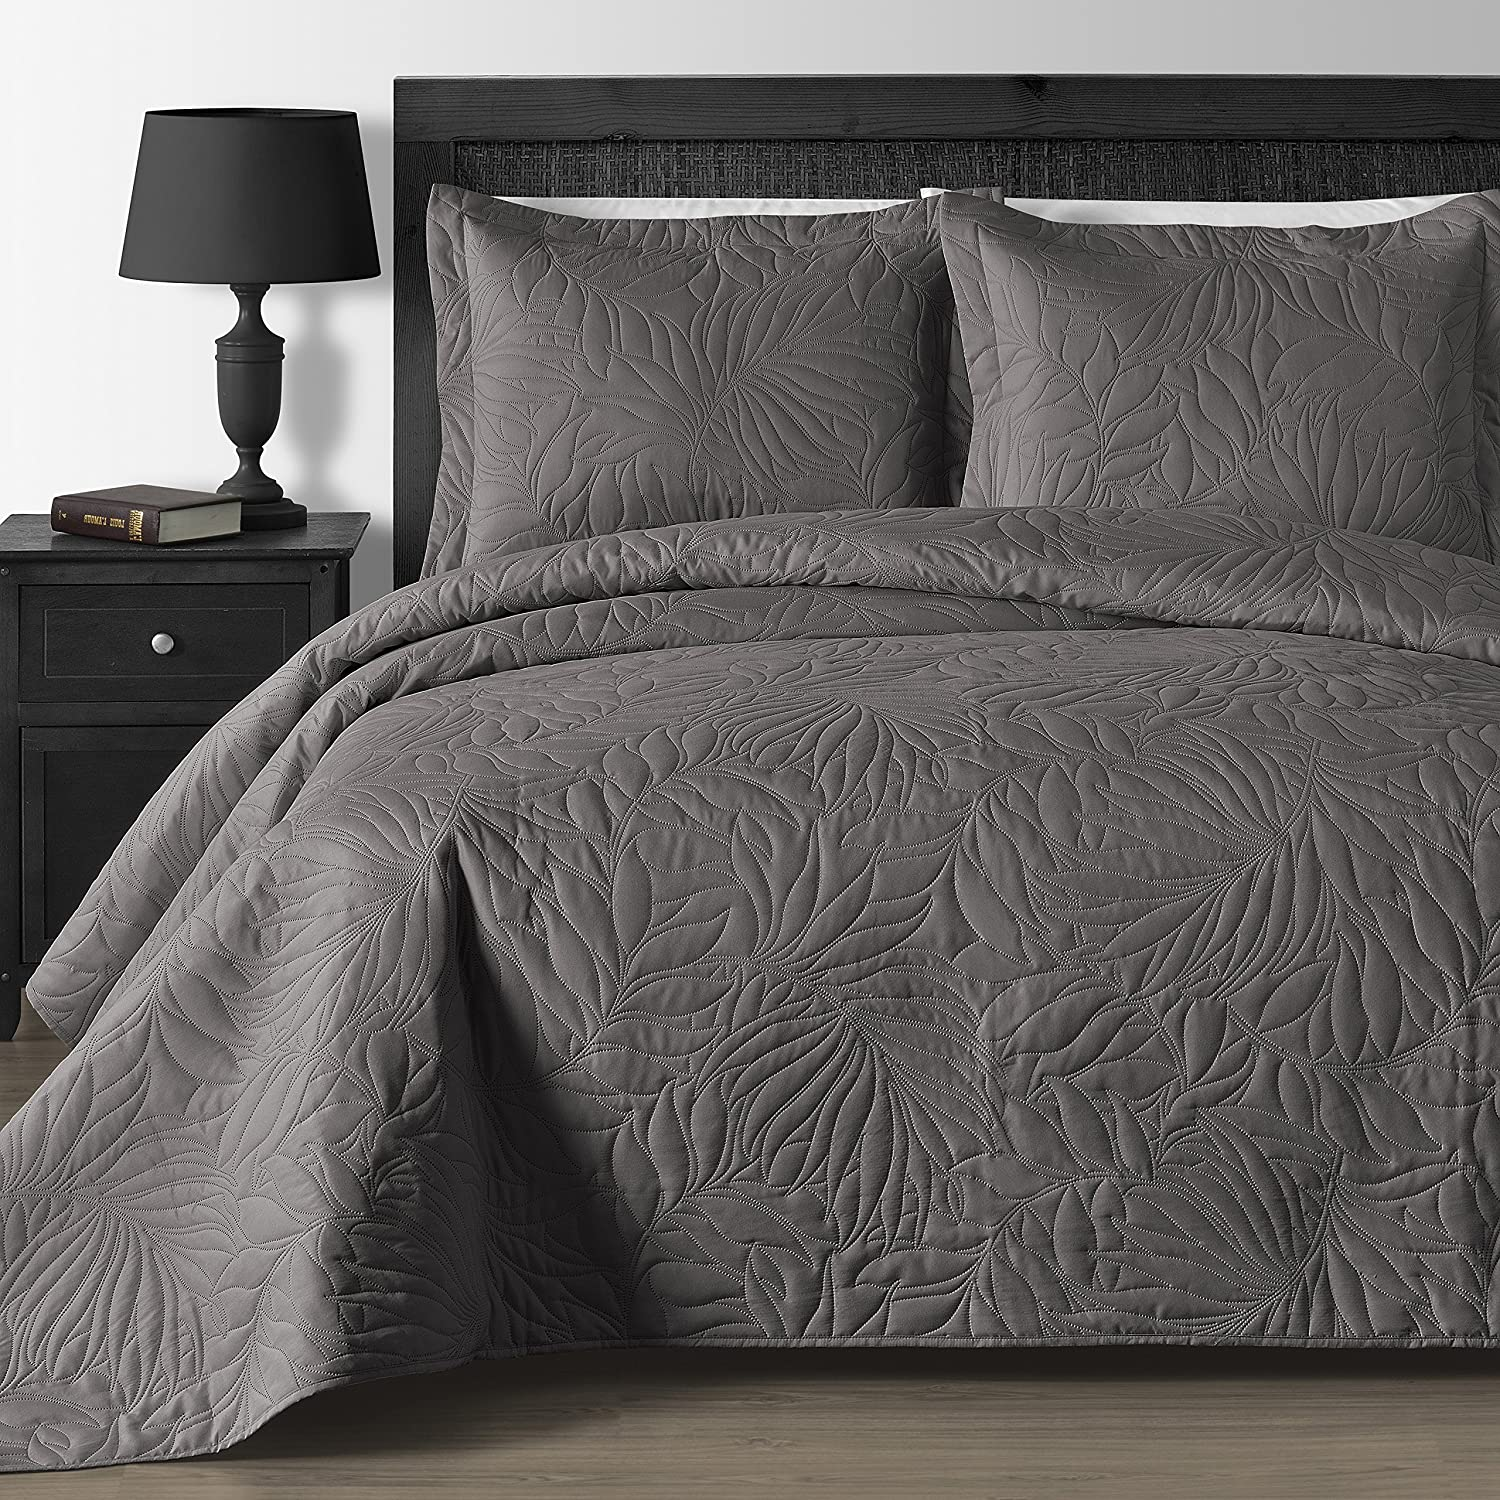 5 Amazing Bedding Sets & Collections: Buying Guide & Reviews 10